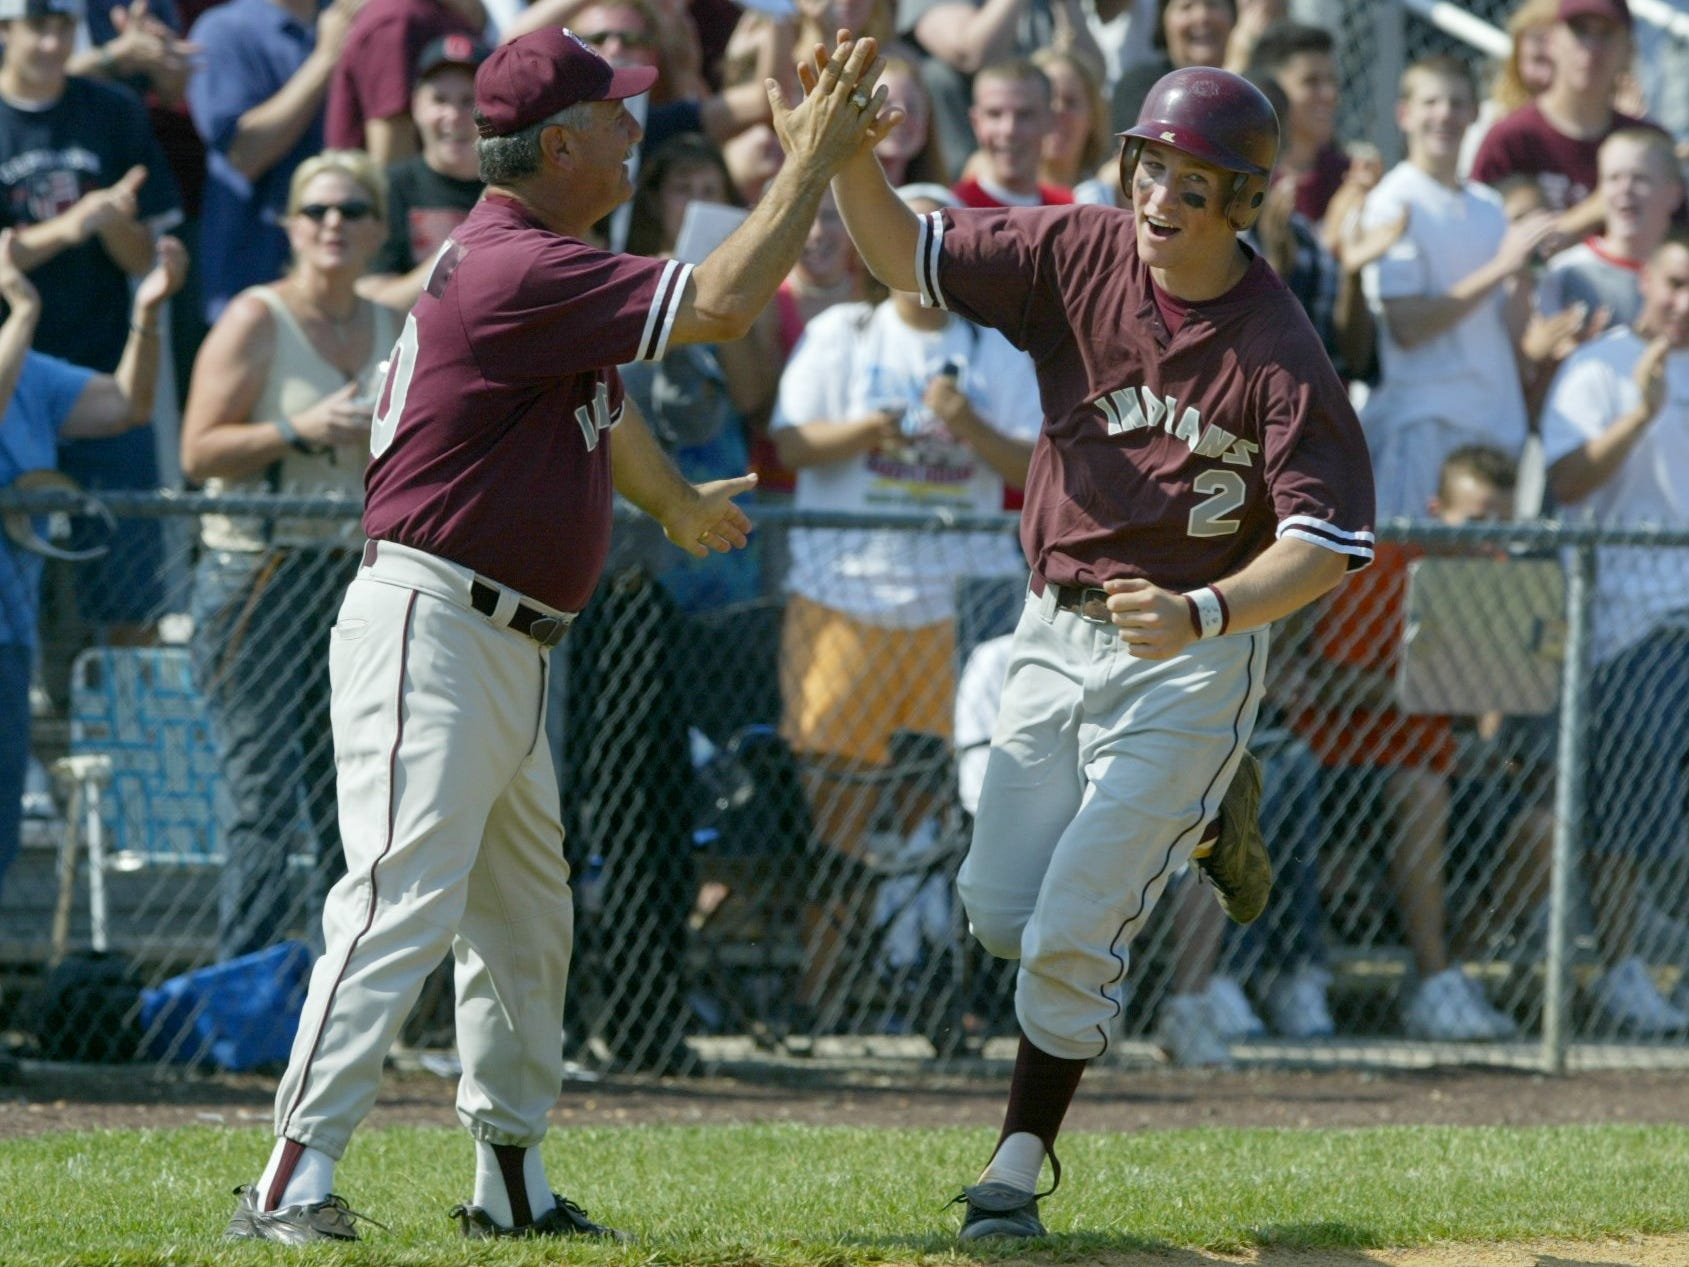 Todd Frazier celebrates with coach Ken Frank as he rounds third after ripping a home run against Cranford in 2003.